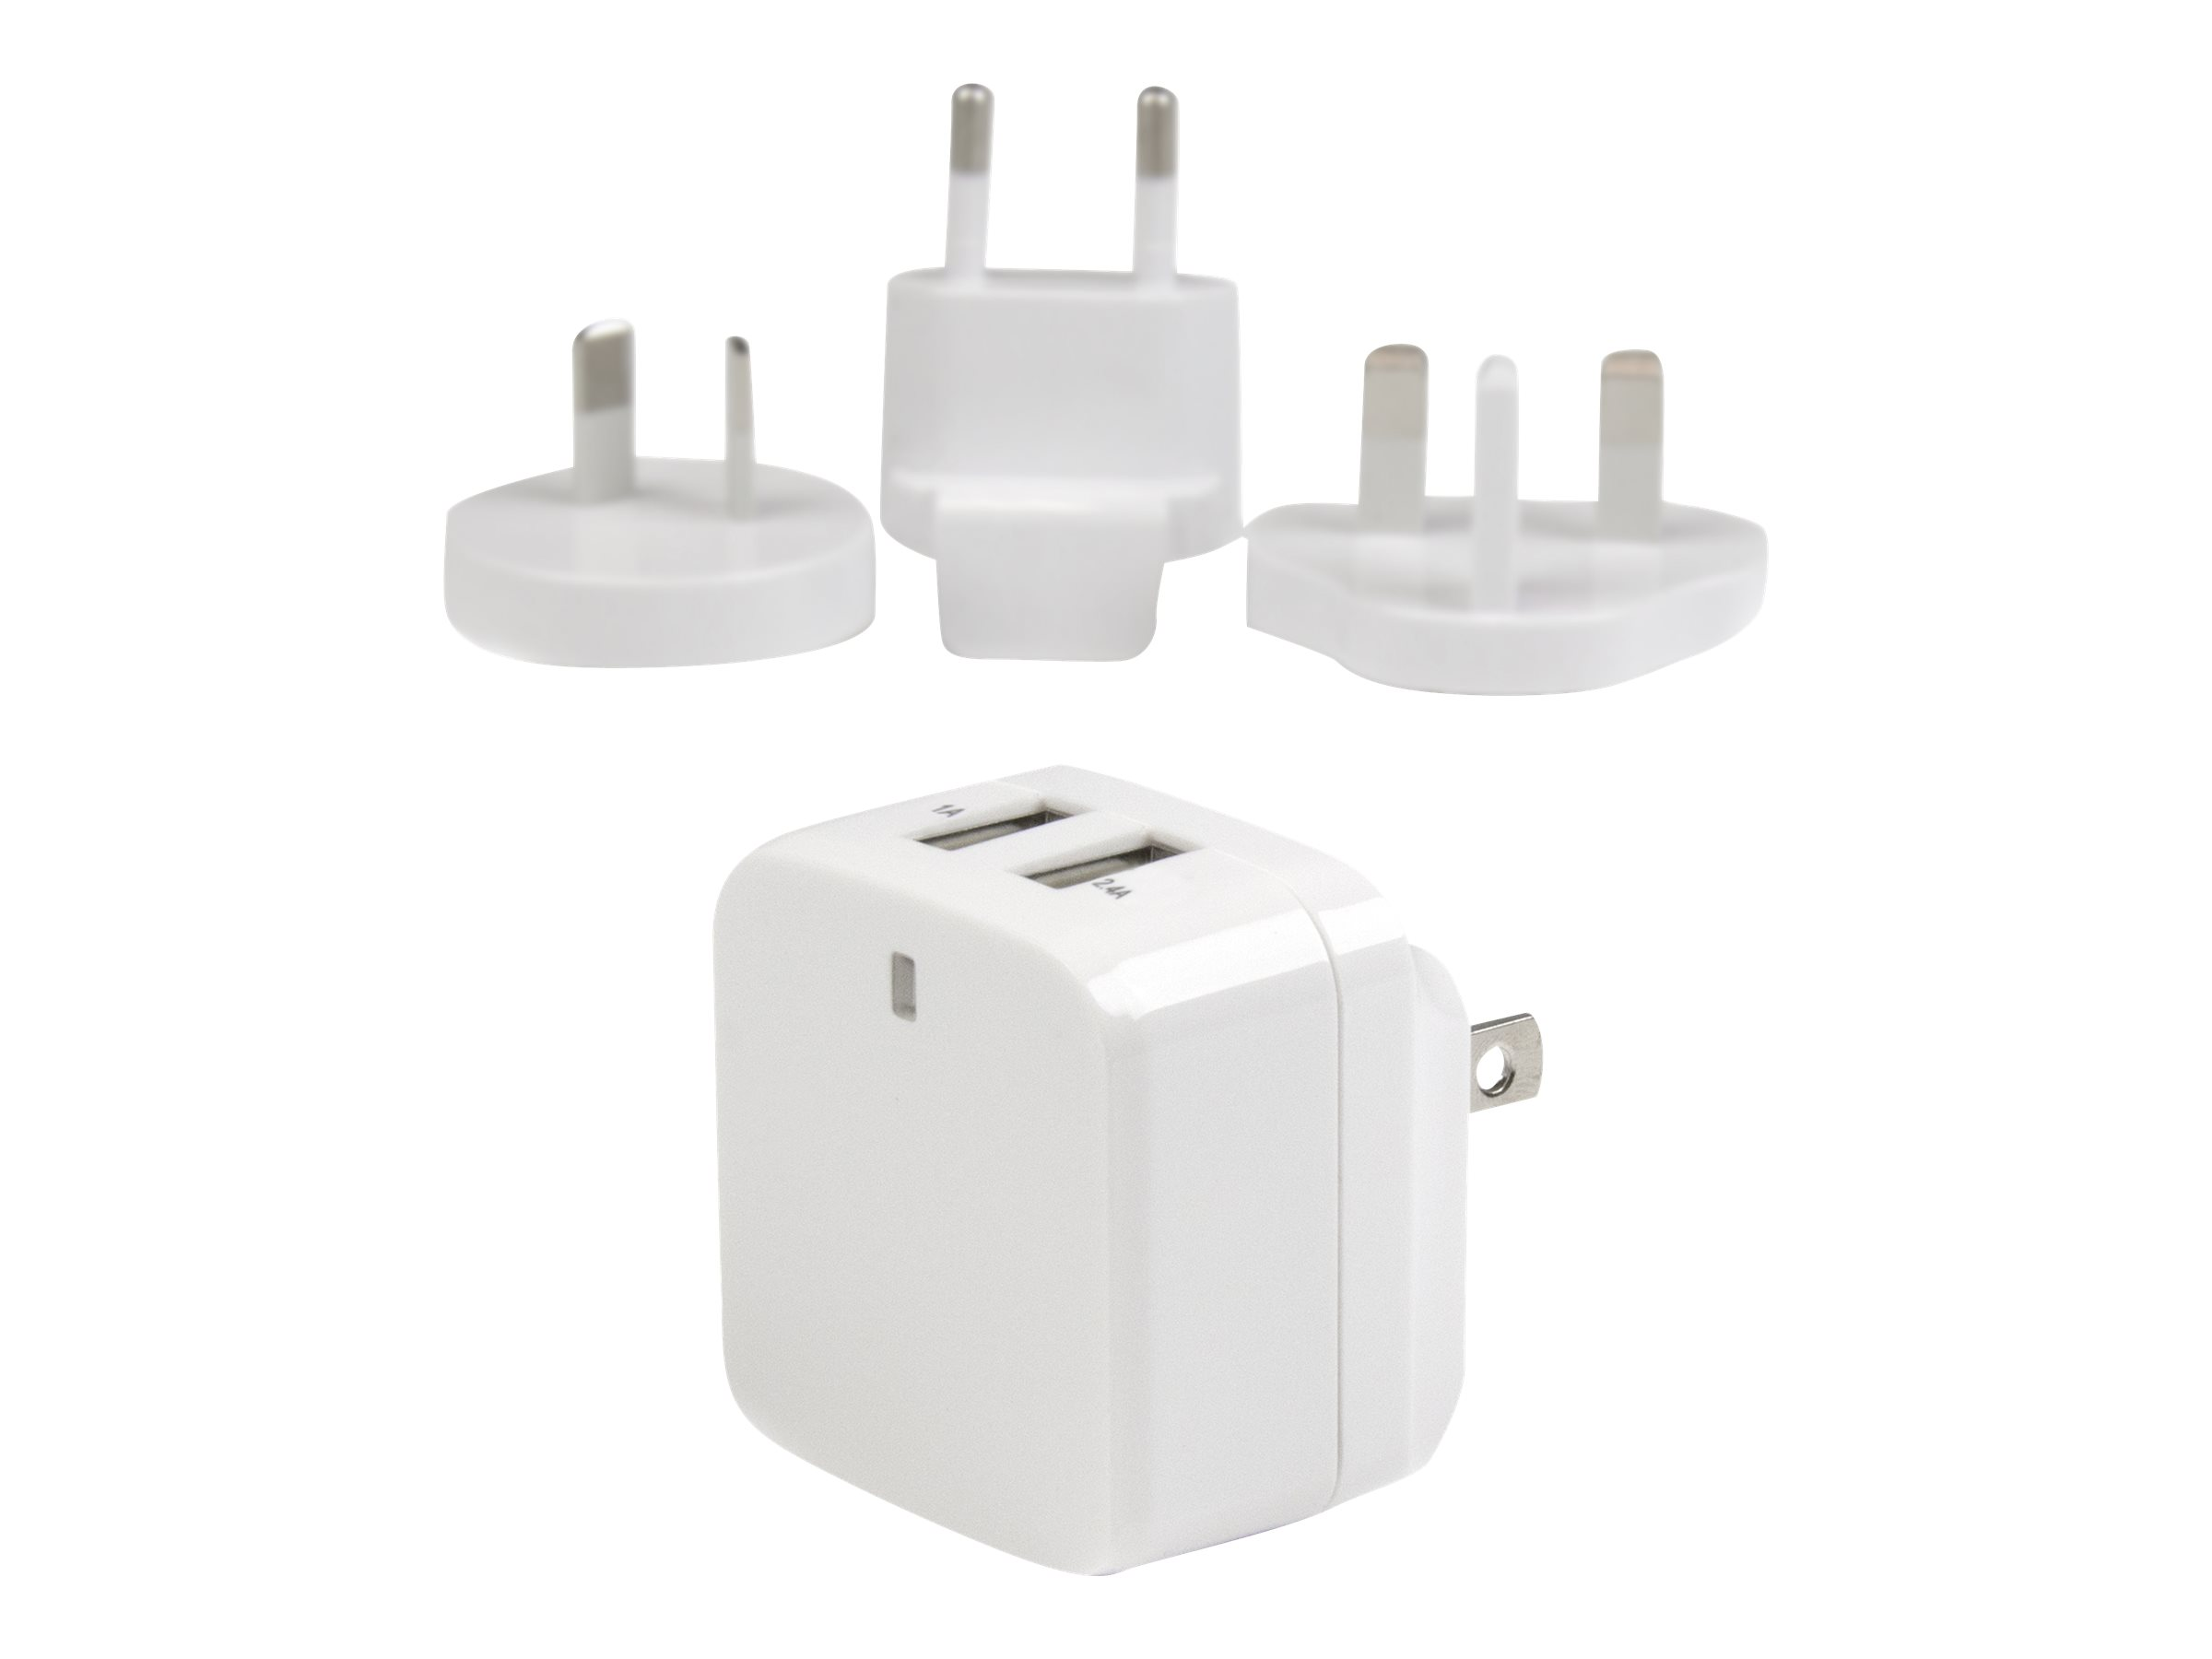 StarTech.com Dual Port USB Wall Charger 17W/3.4A - Travel Charger 110V/220V power adapter